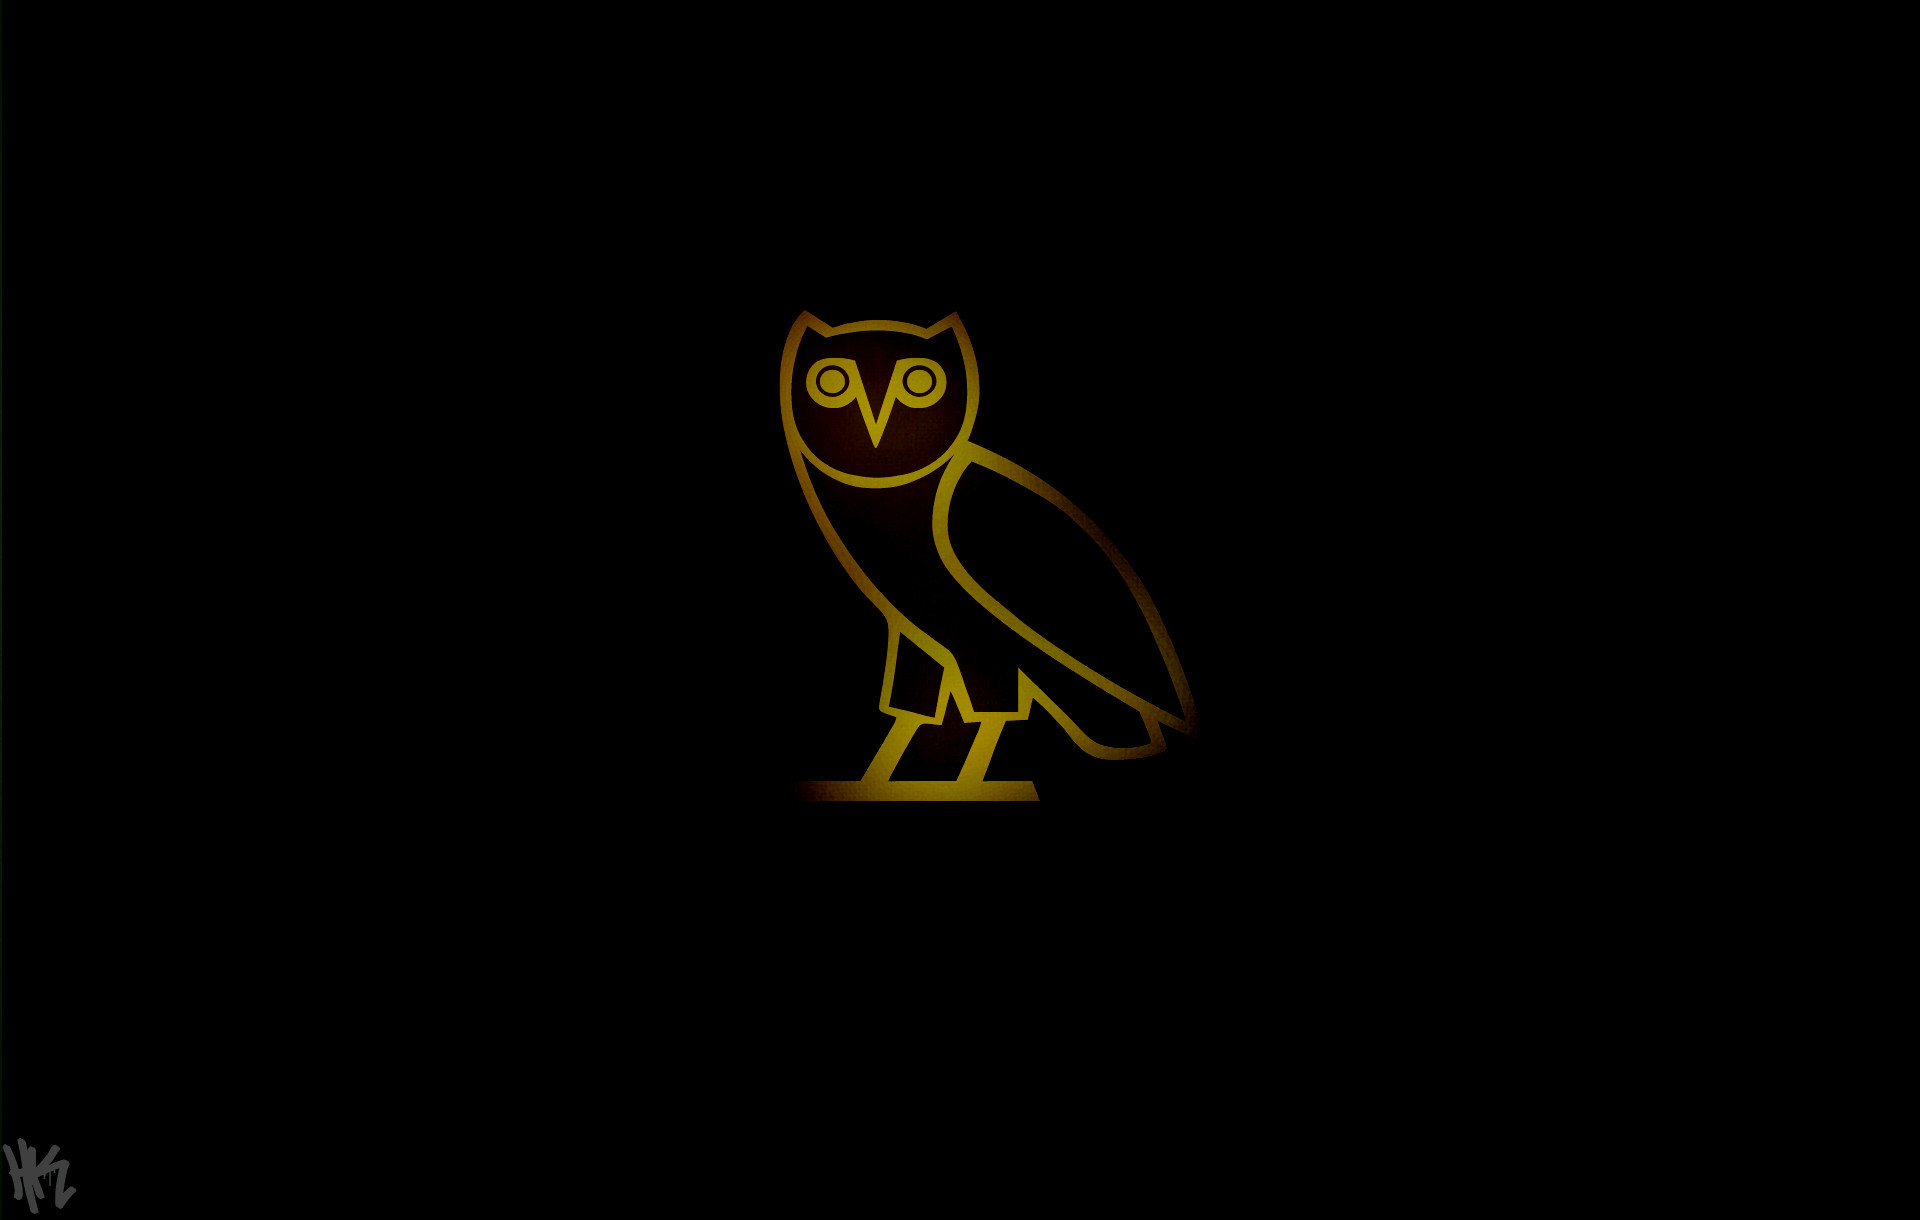 OVO | OVOXO Wallpapers – Page 14 Â« Kanye West Forum